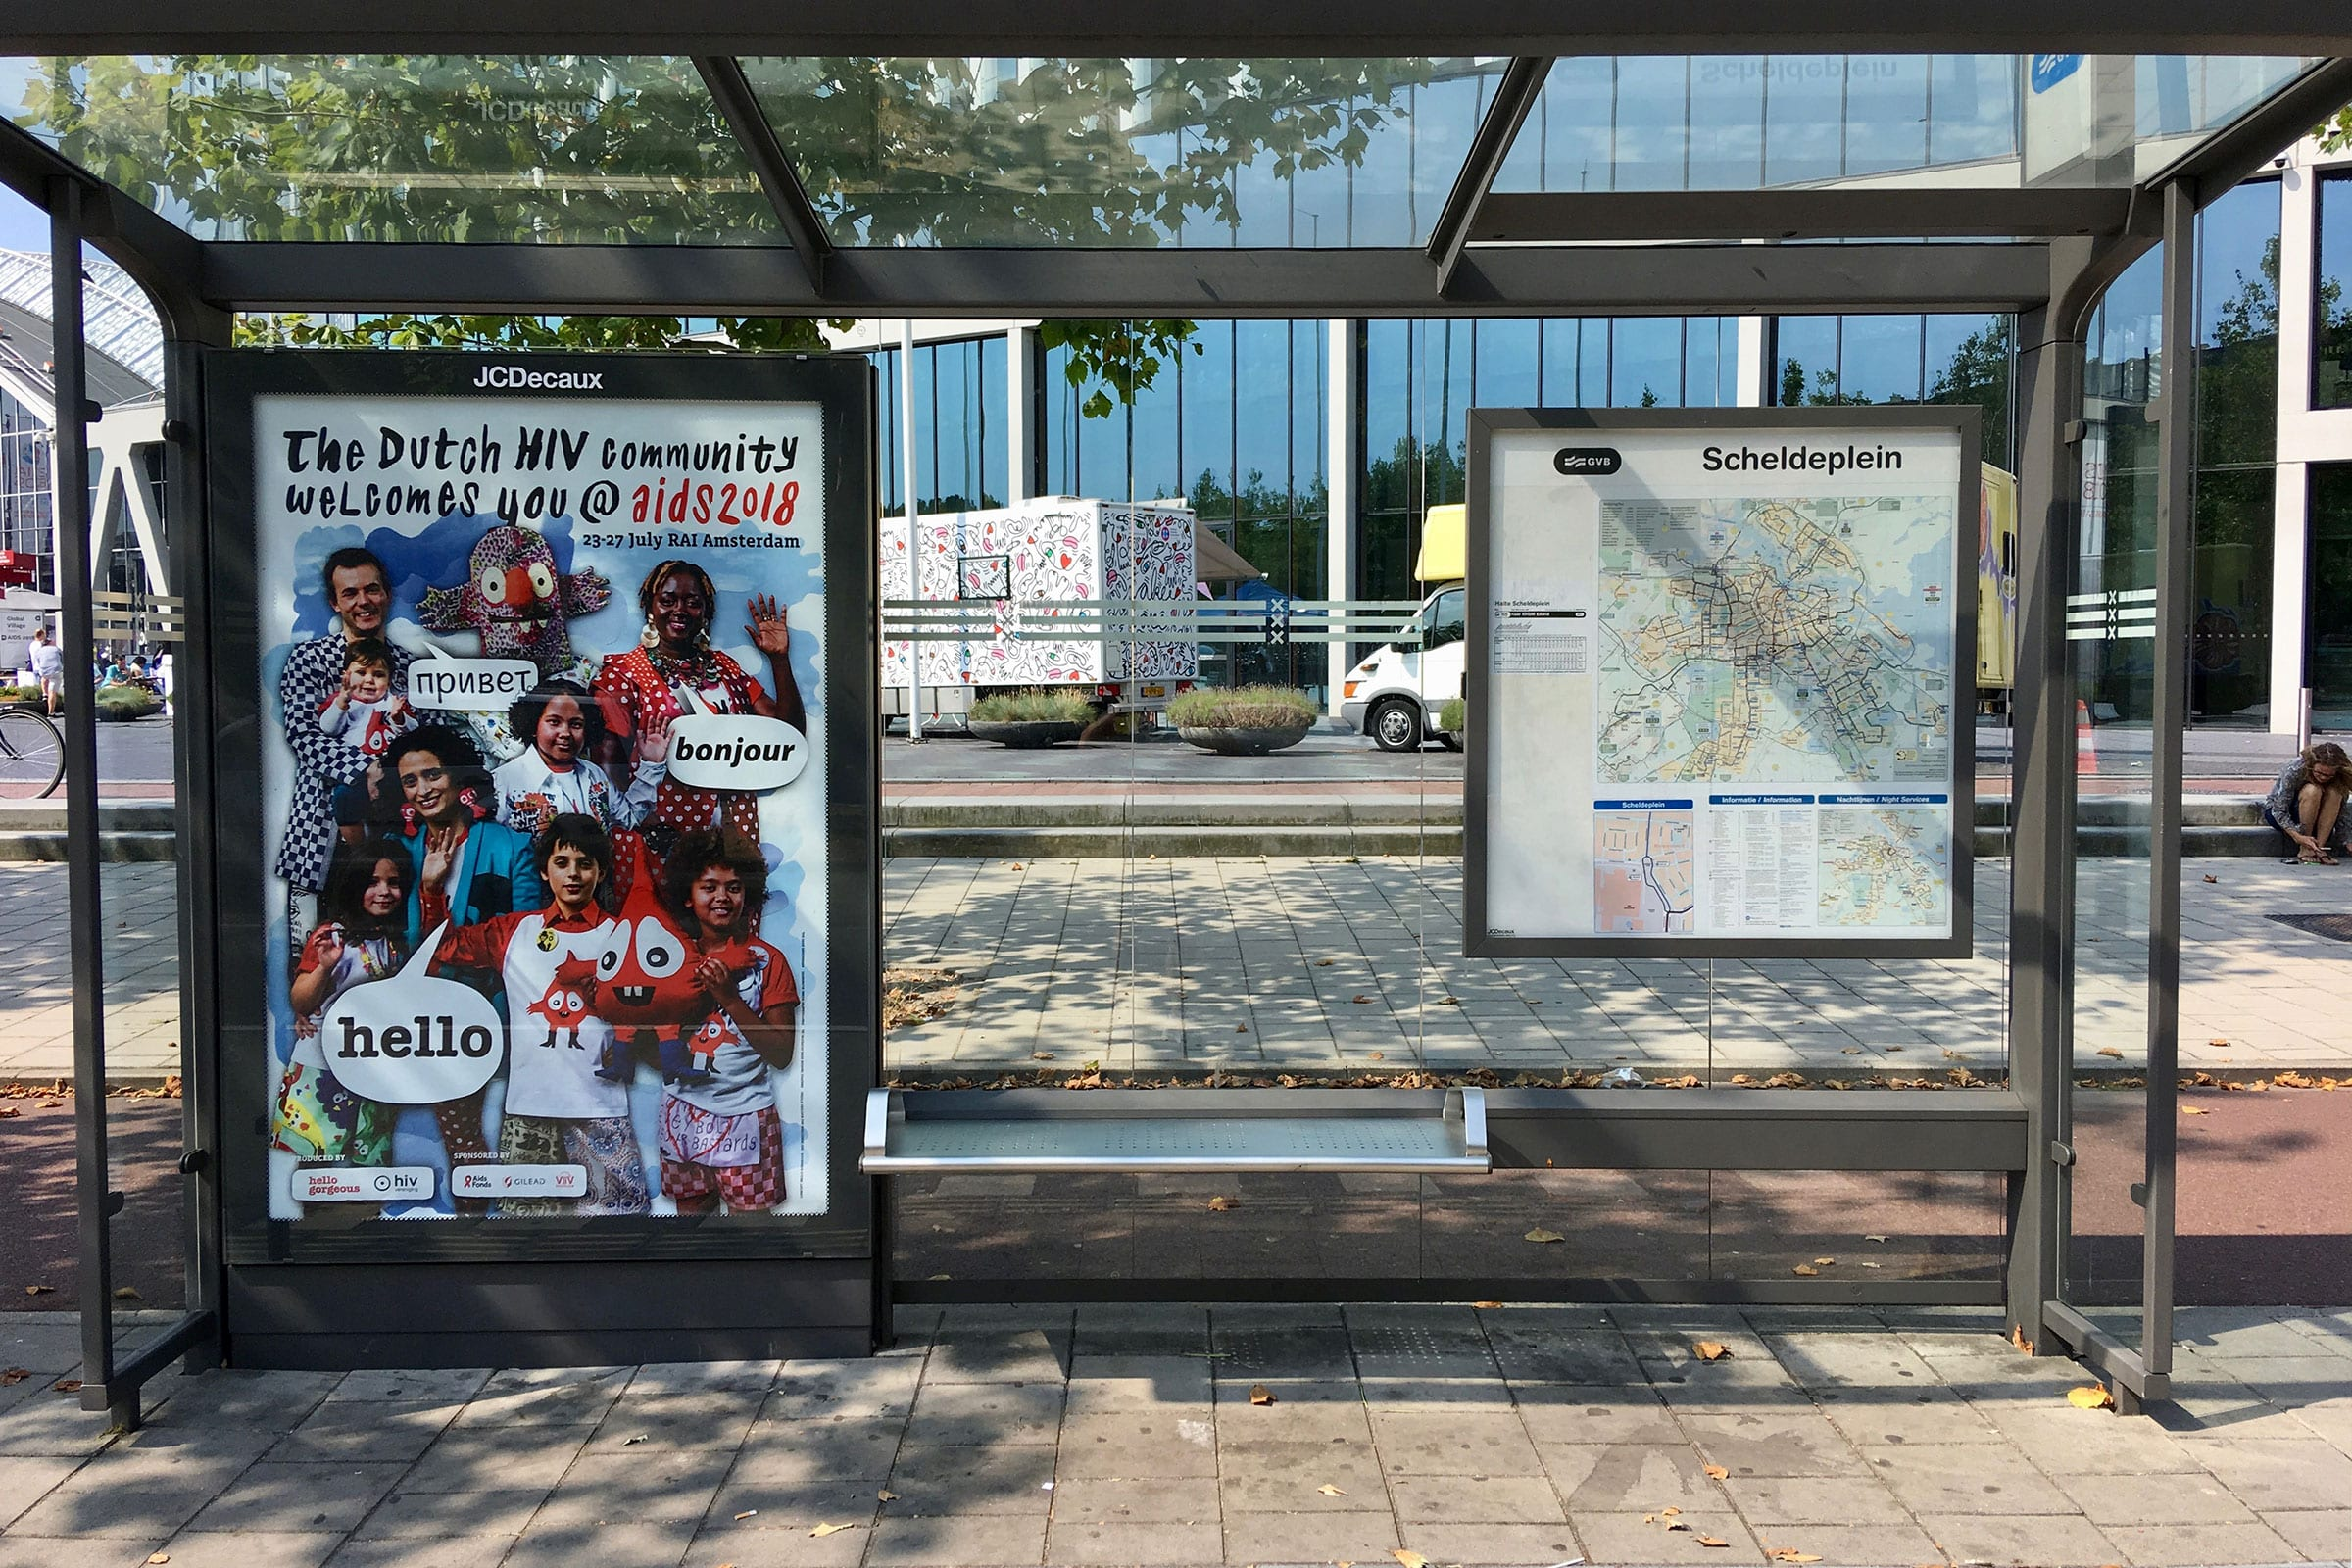 Gebr. Silvestri Positively Dutch – 'The Dutch HIV Community welcomes you @ Aids 2018'